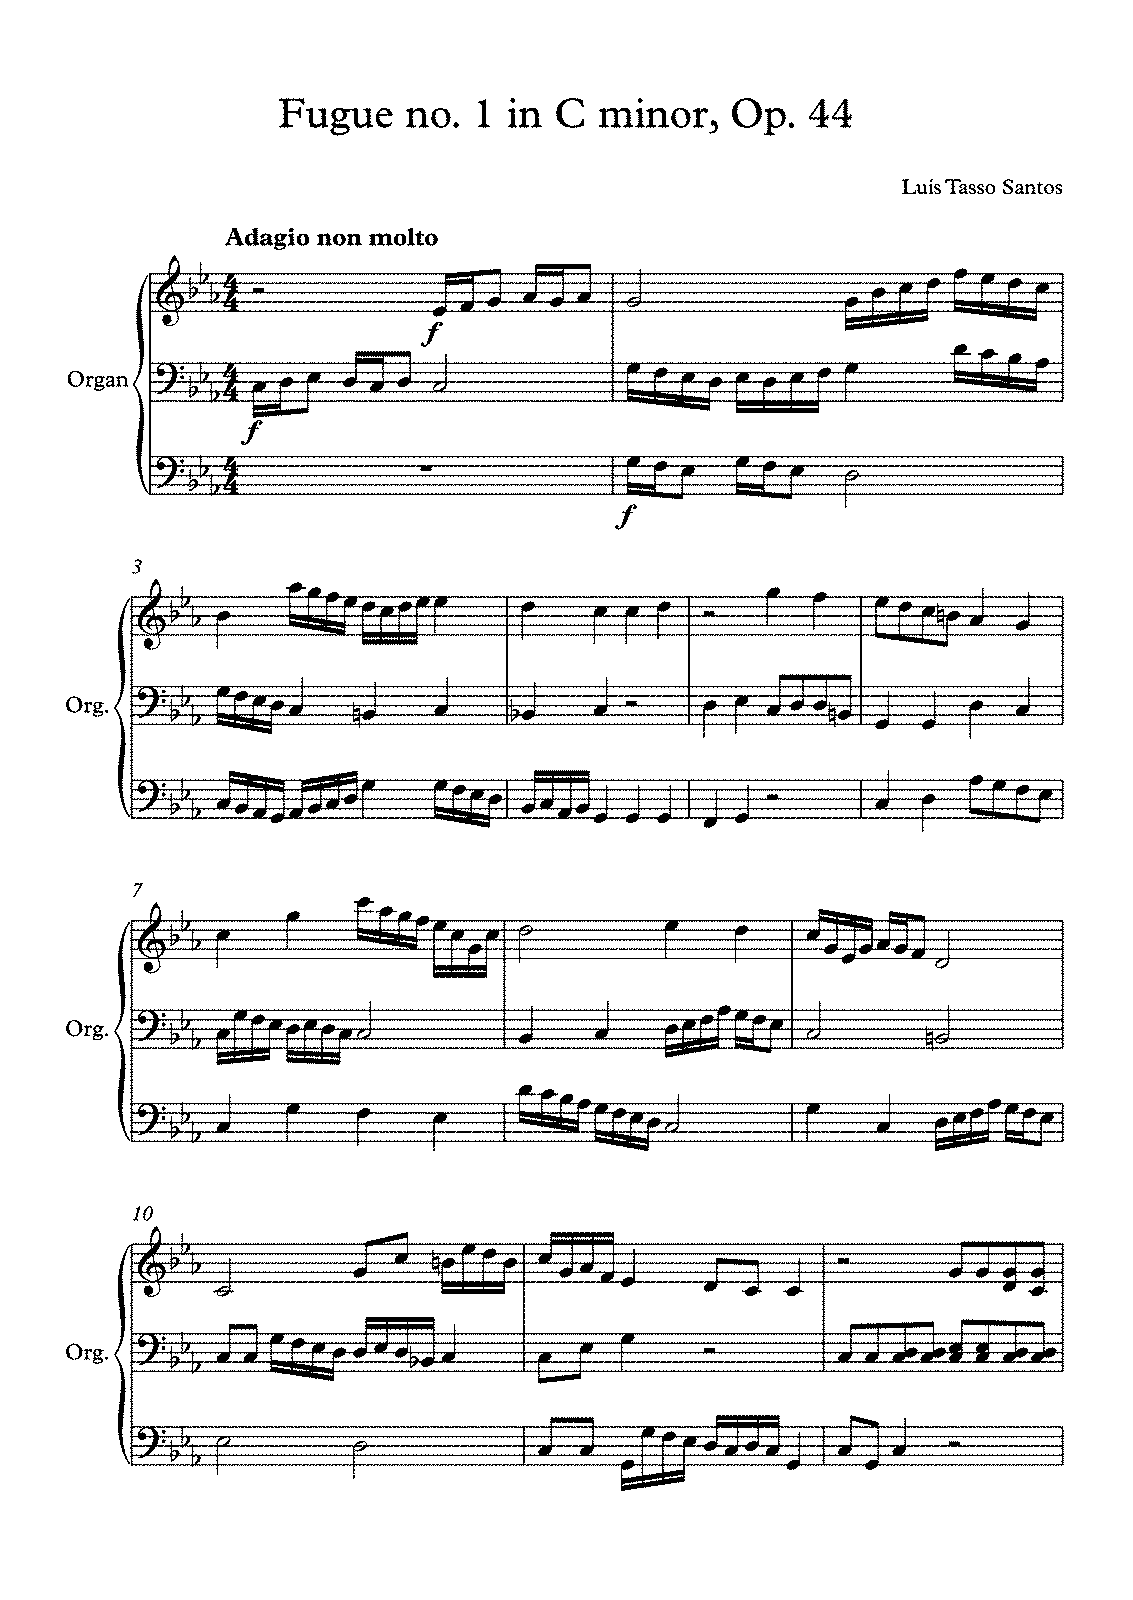 PMLP453157-Fugue no 1 in C minor - Full Score.pdf